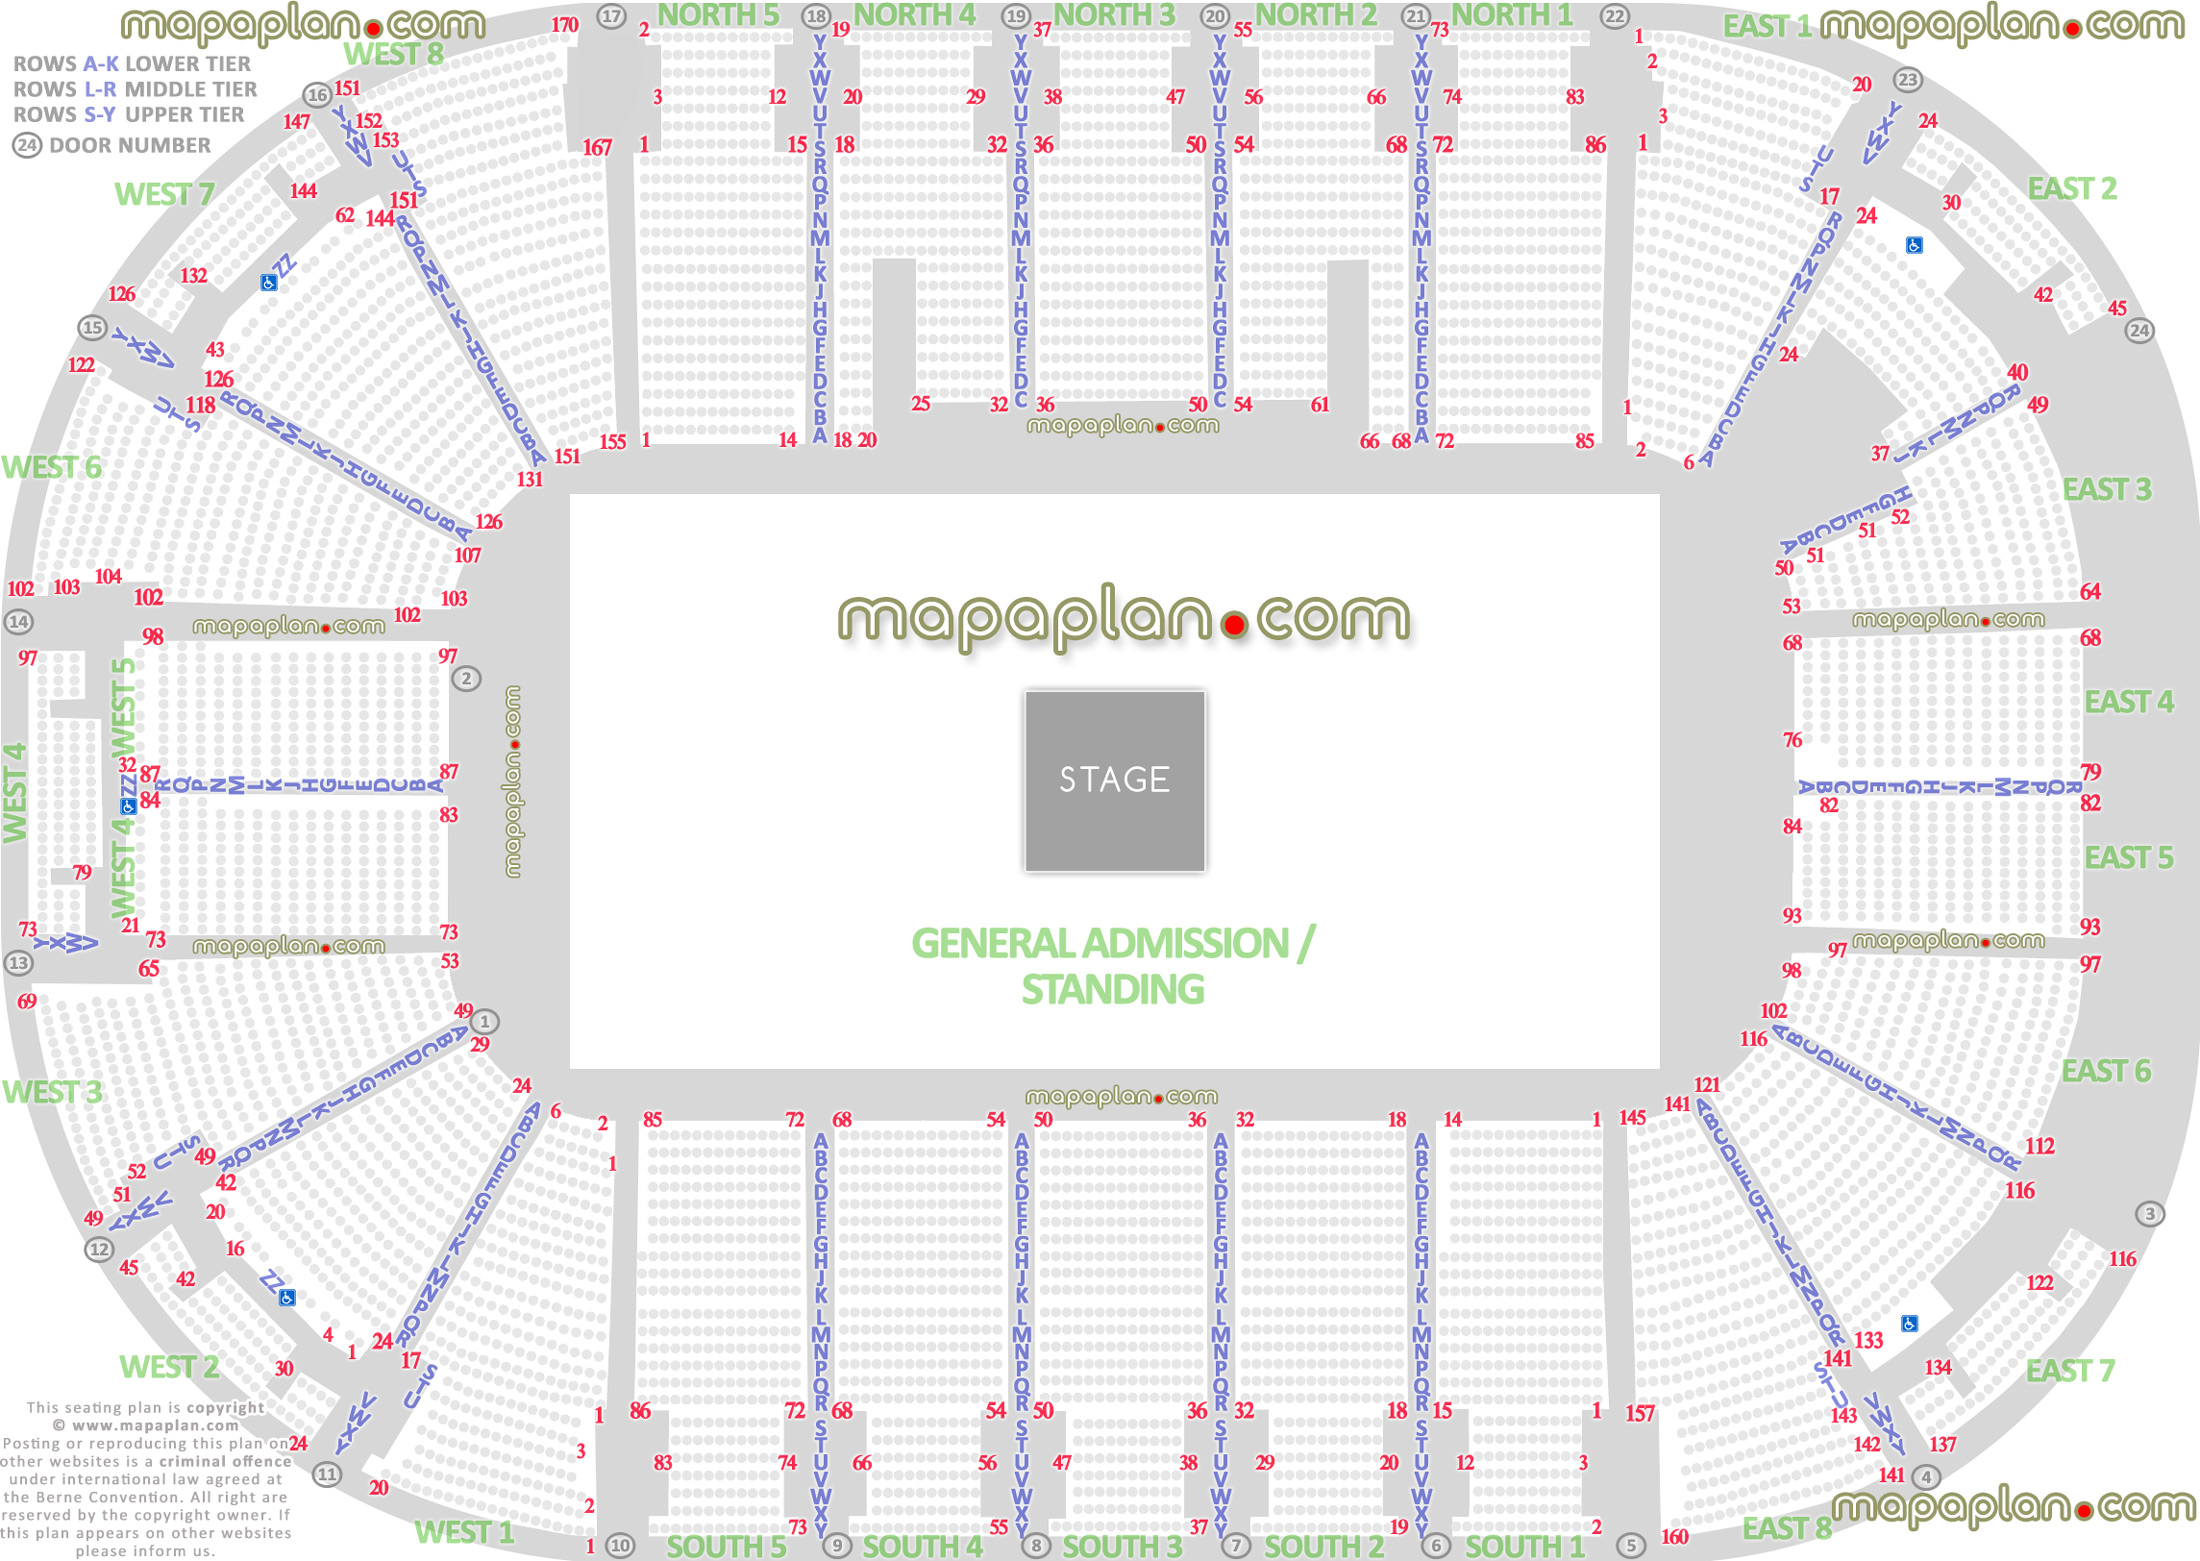 arena stage diagram project impact odyssey sse concert in the round 360